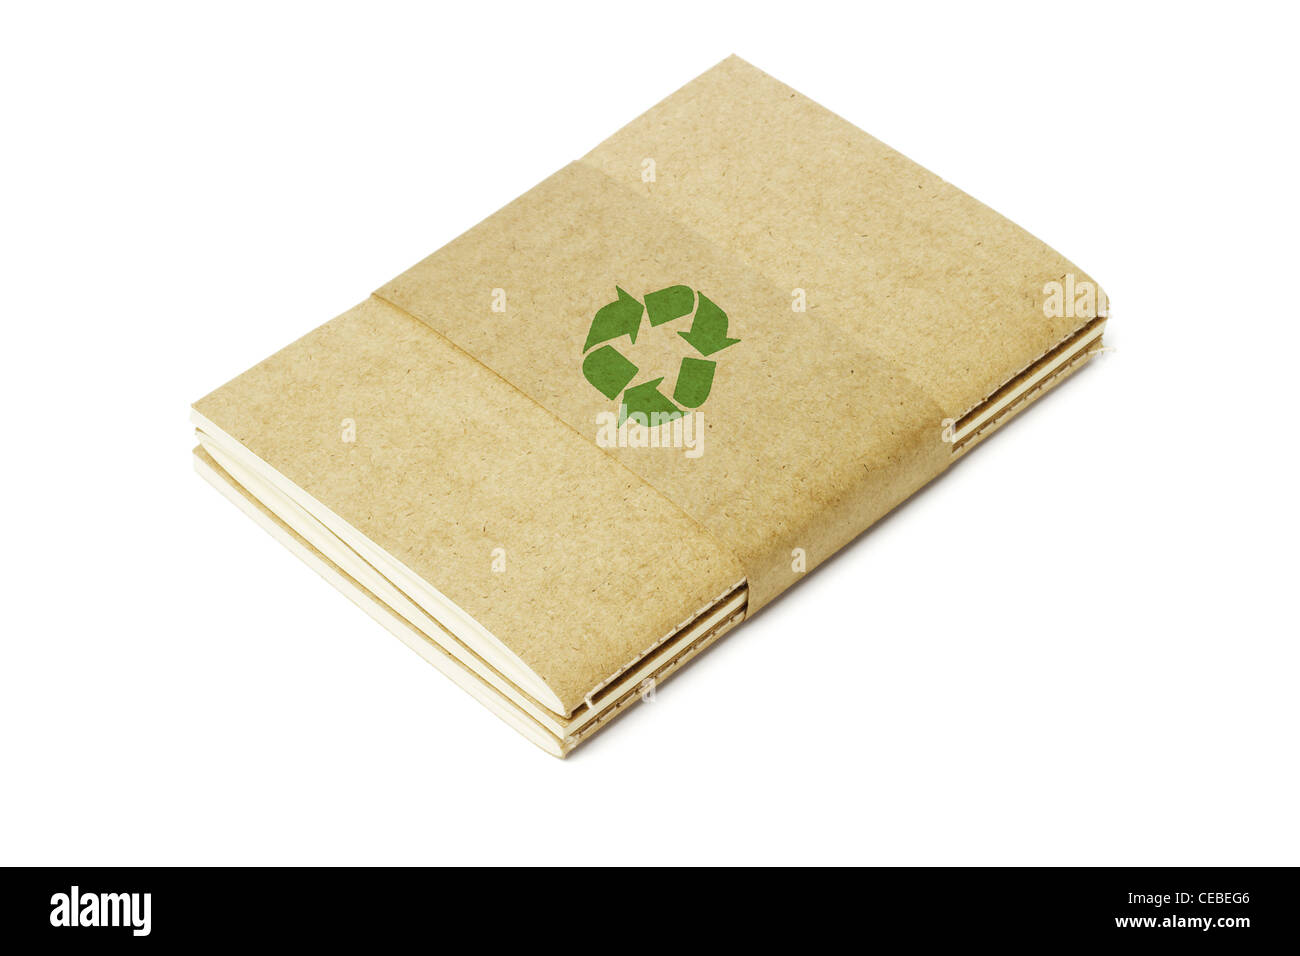 Thread Sew Books of Recycled Papers on White Background - Stock Image